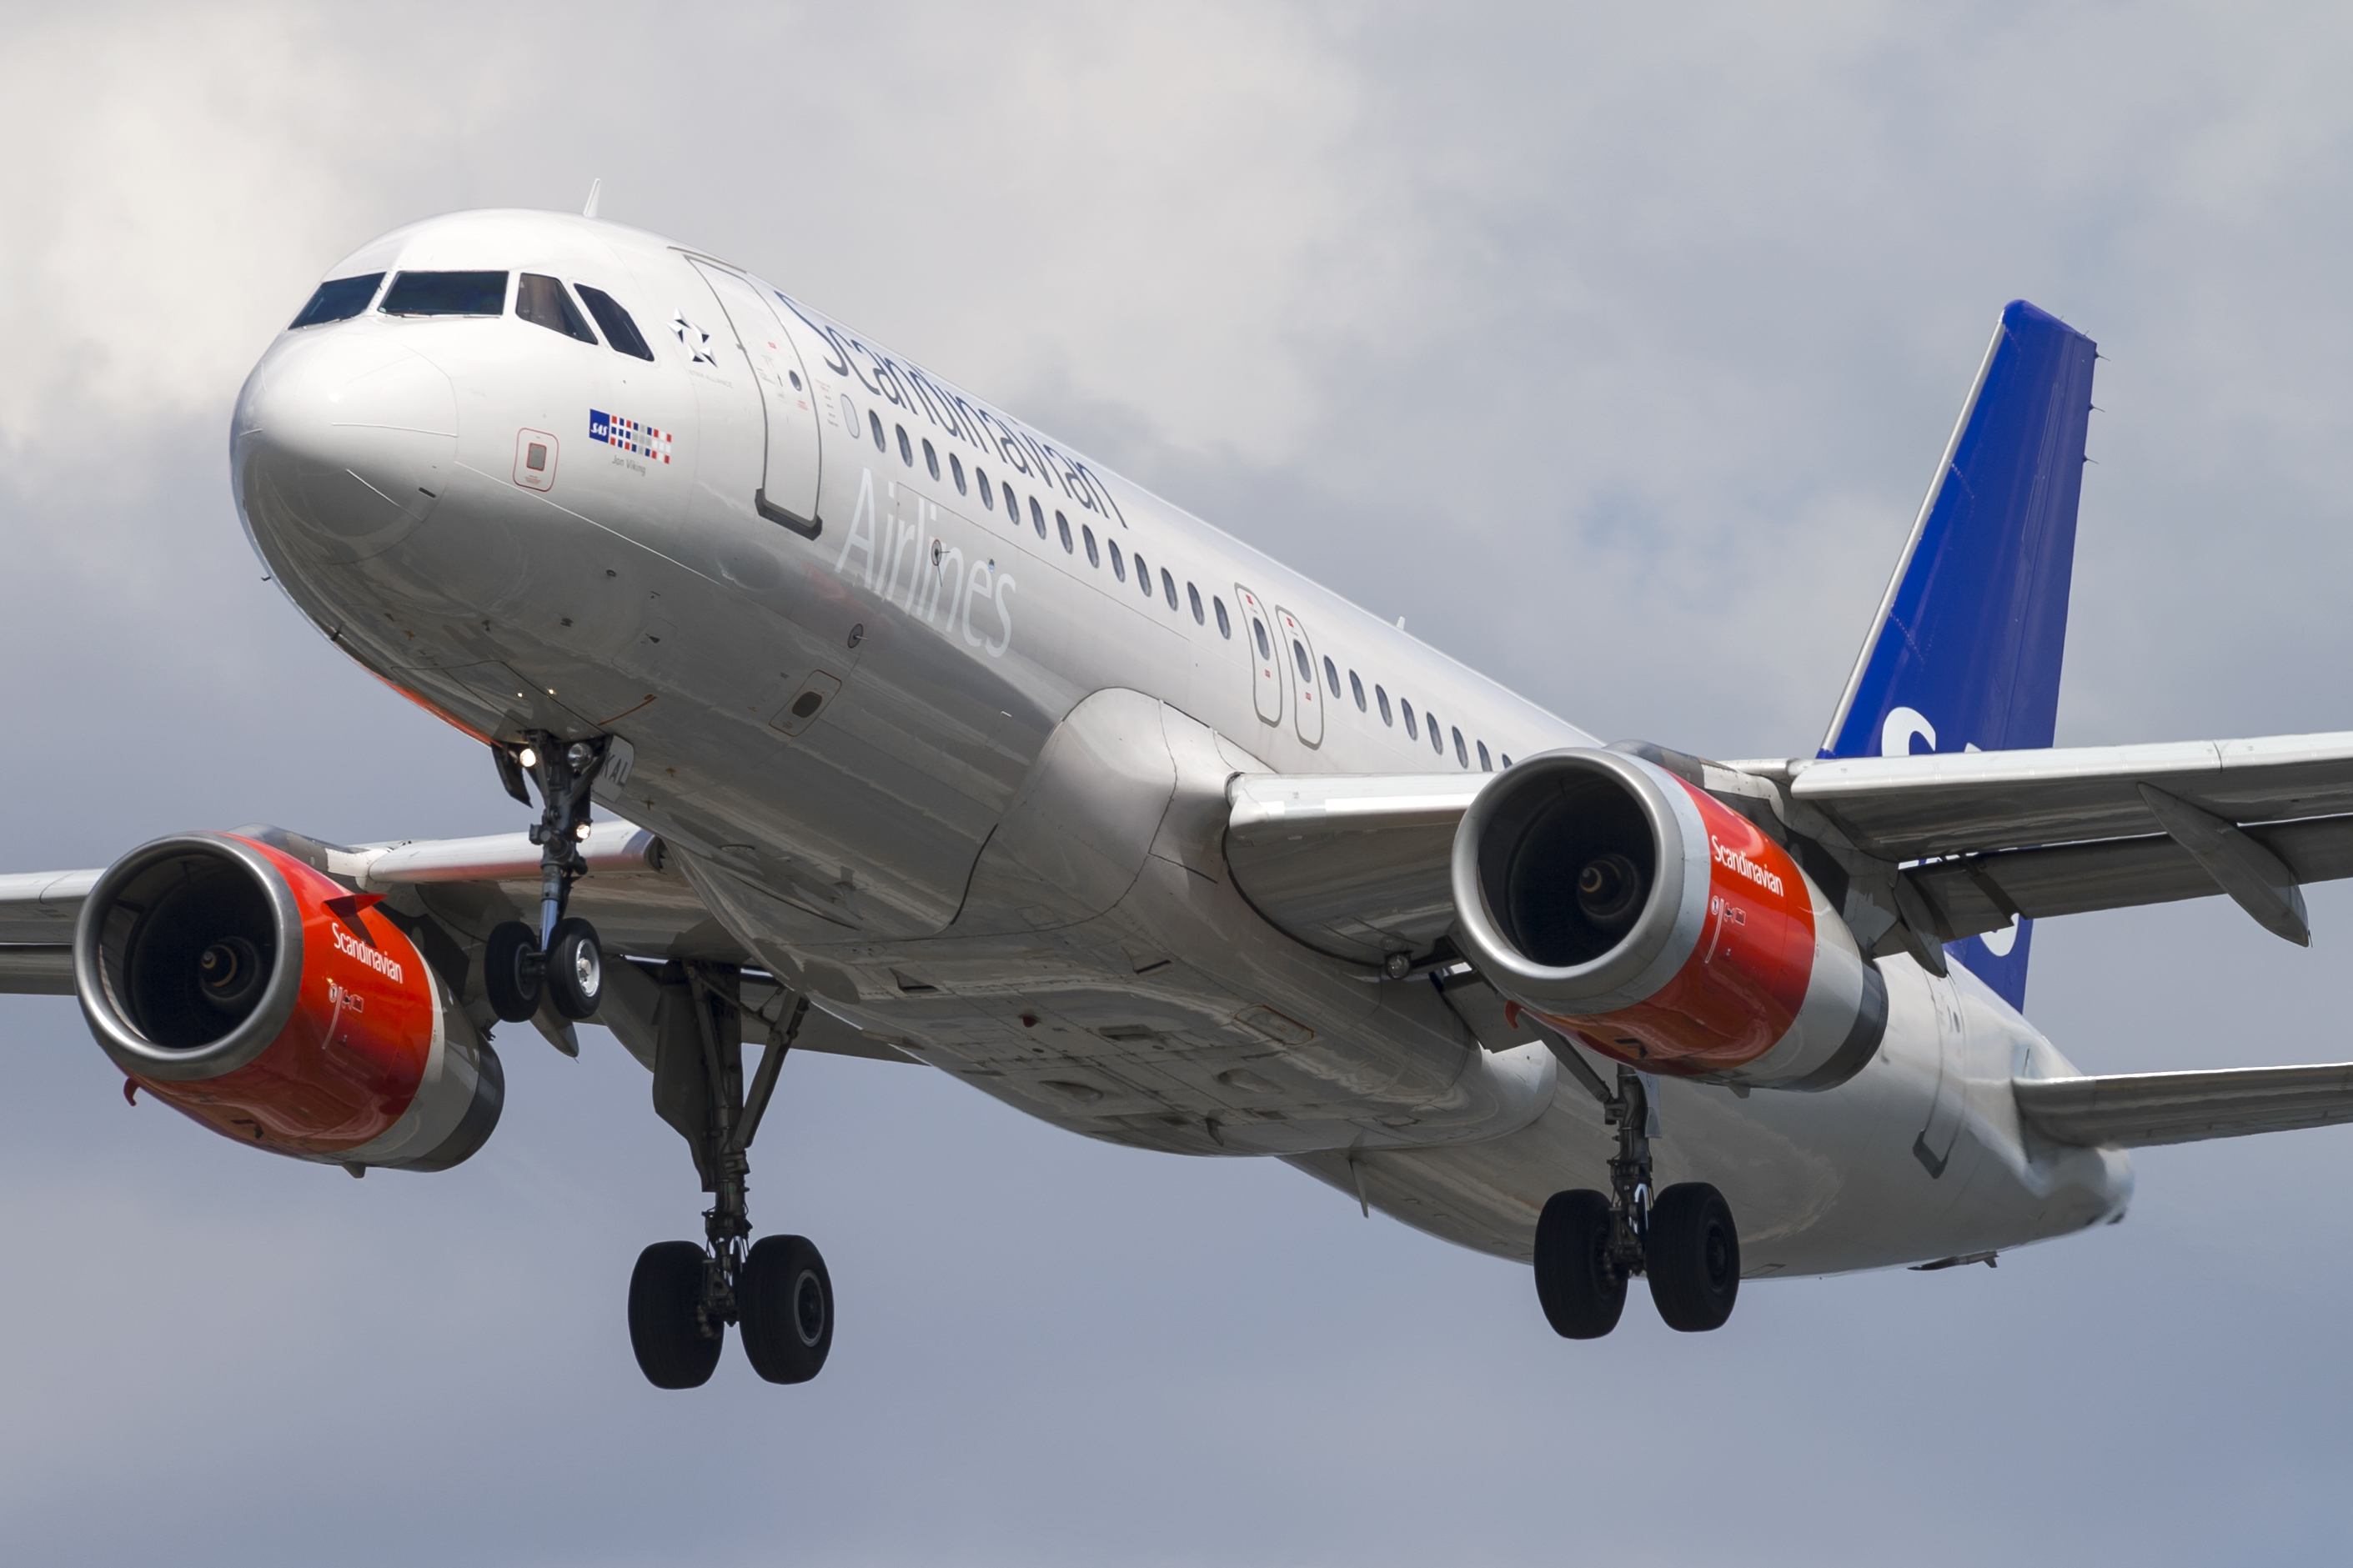 Airbus A320-200 fra SAS. (Foto: © Thorbjørn Brunander Sund, Danish Aviation Photo)